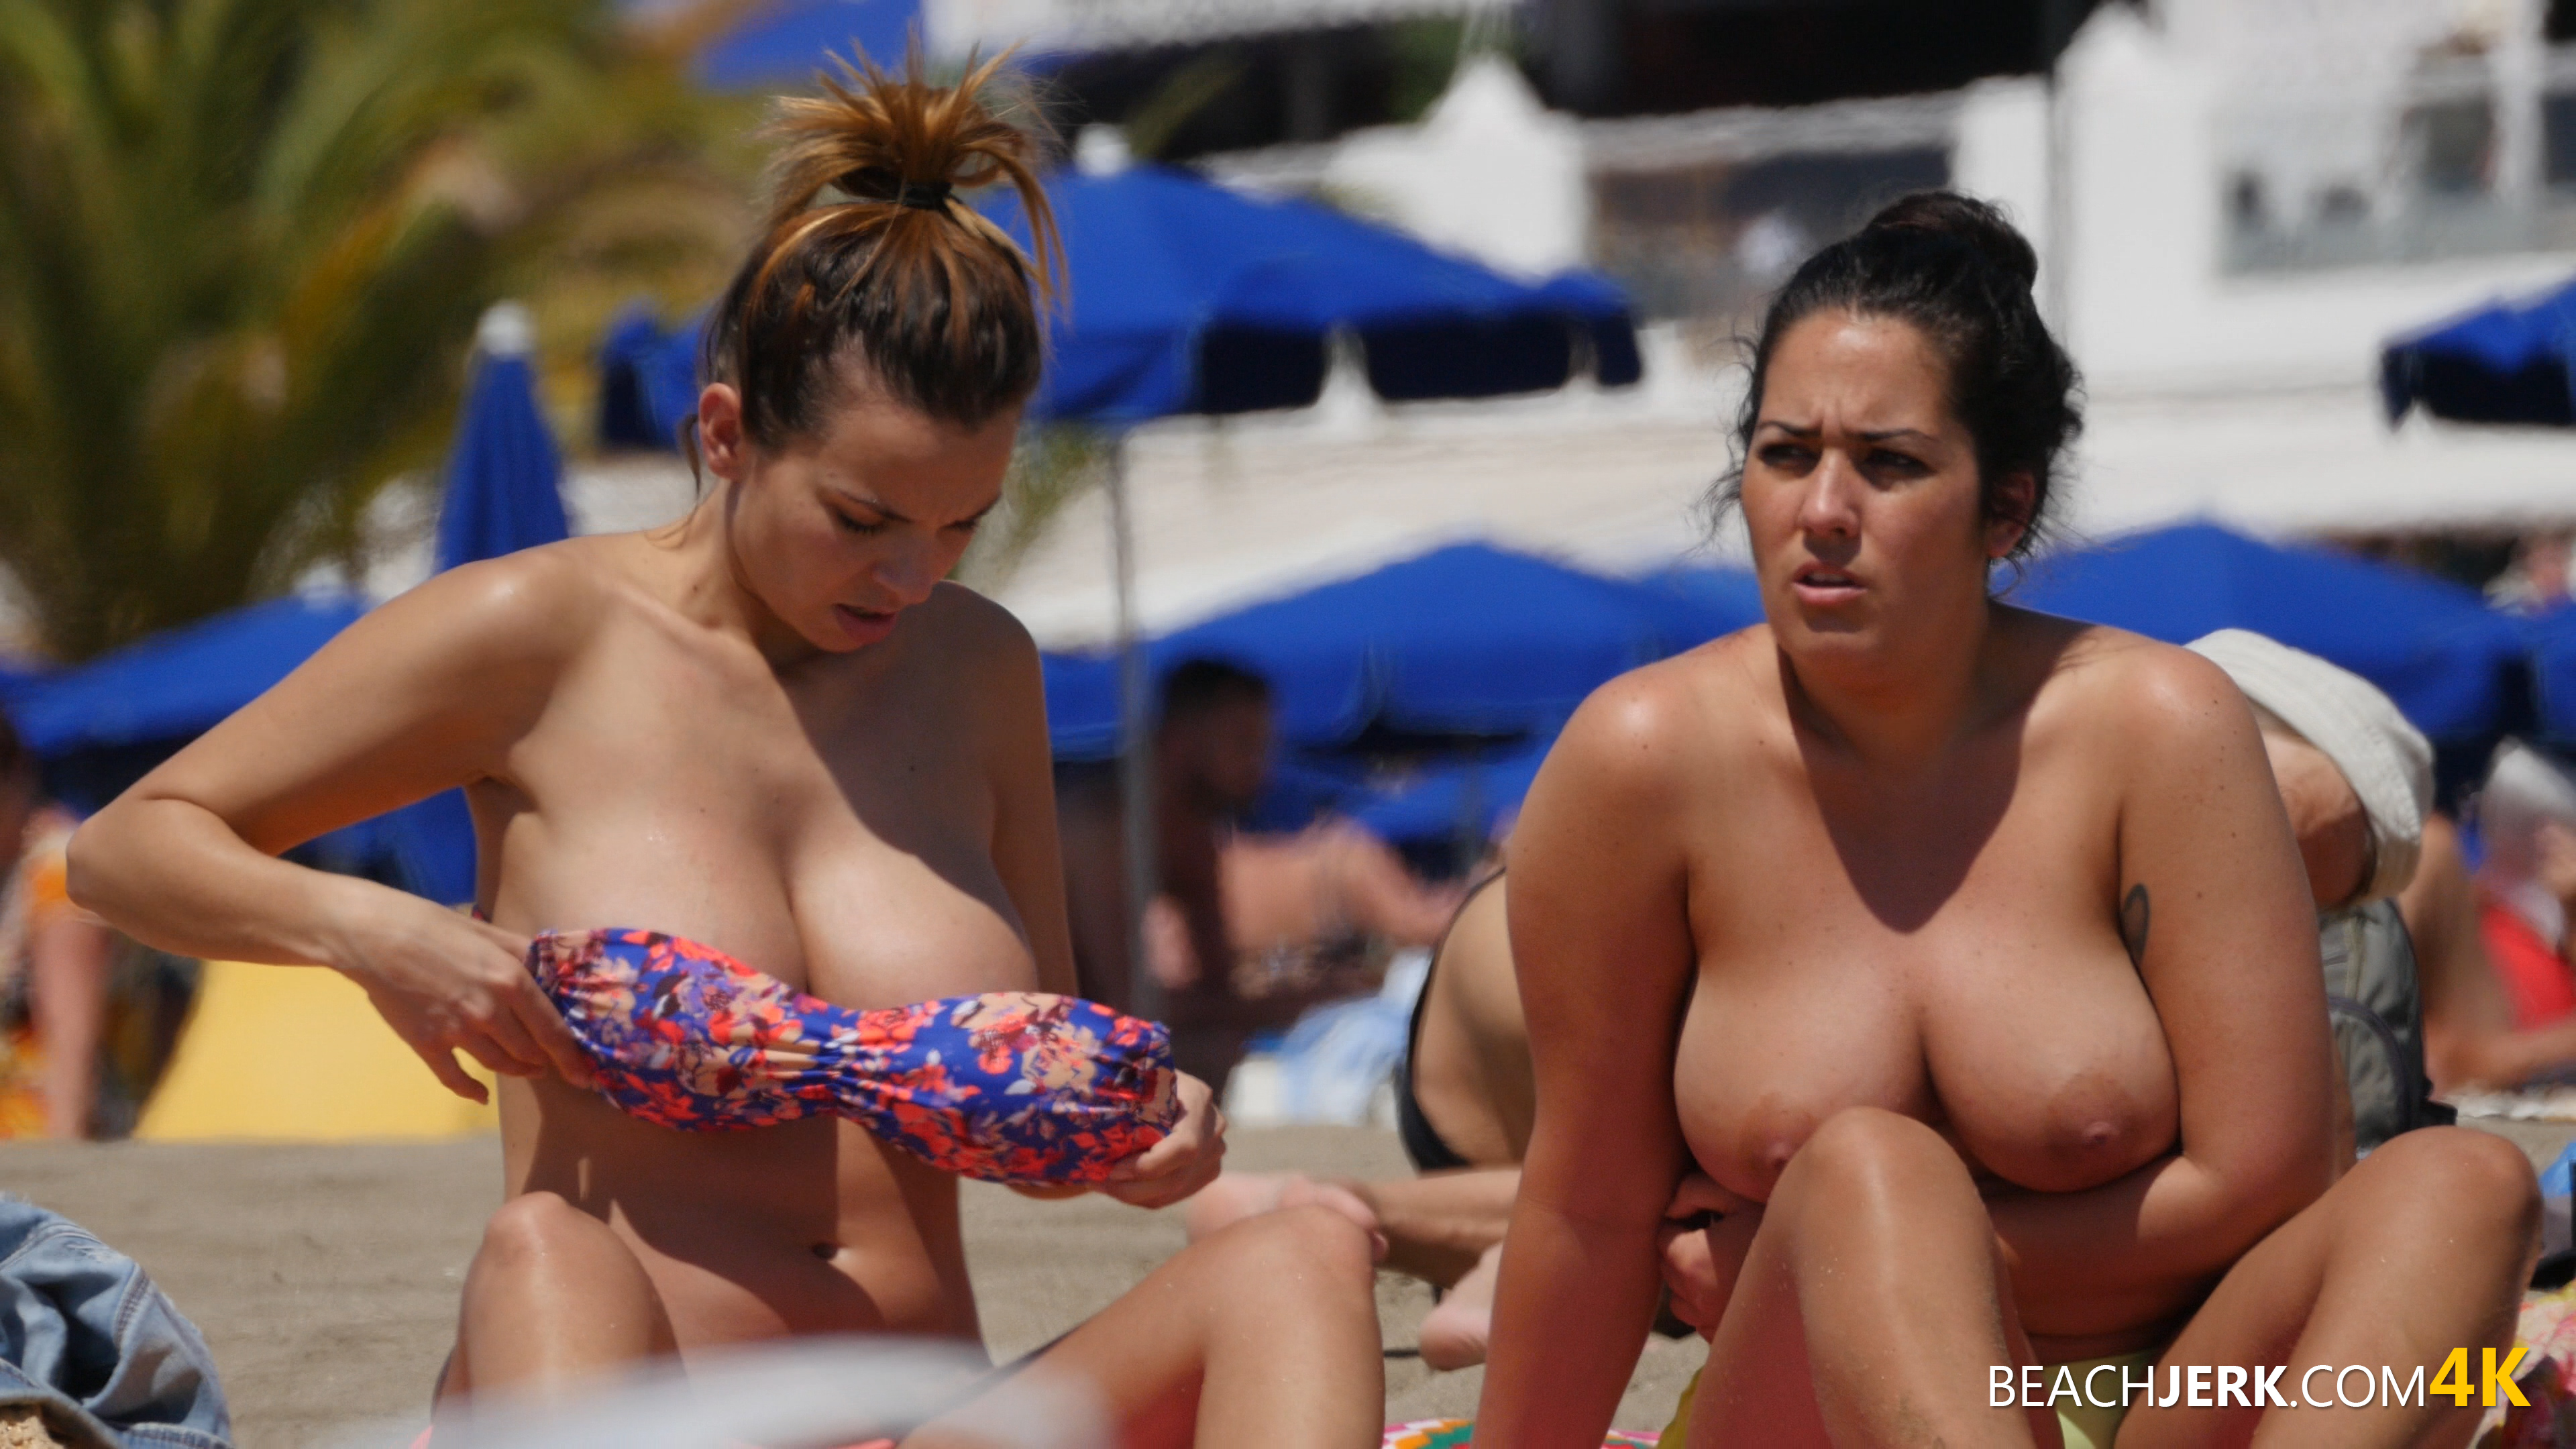 the biggest nipples you will ever see on the beach - beach jerk